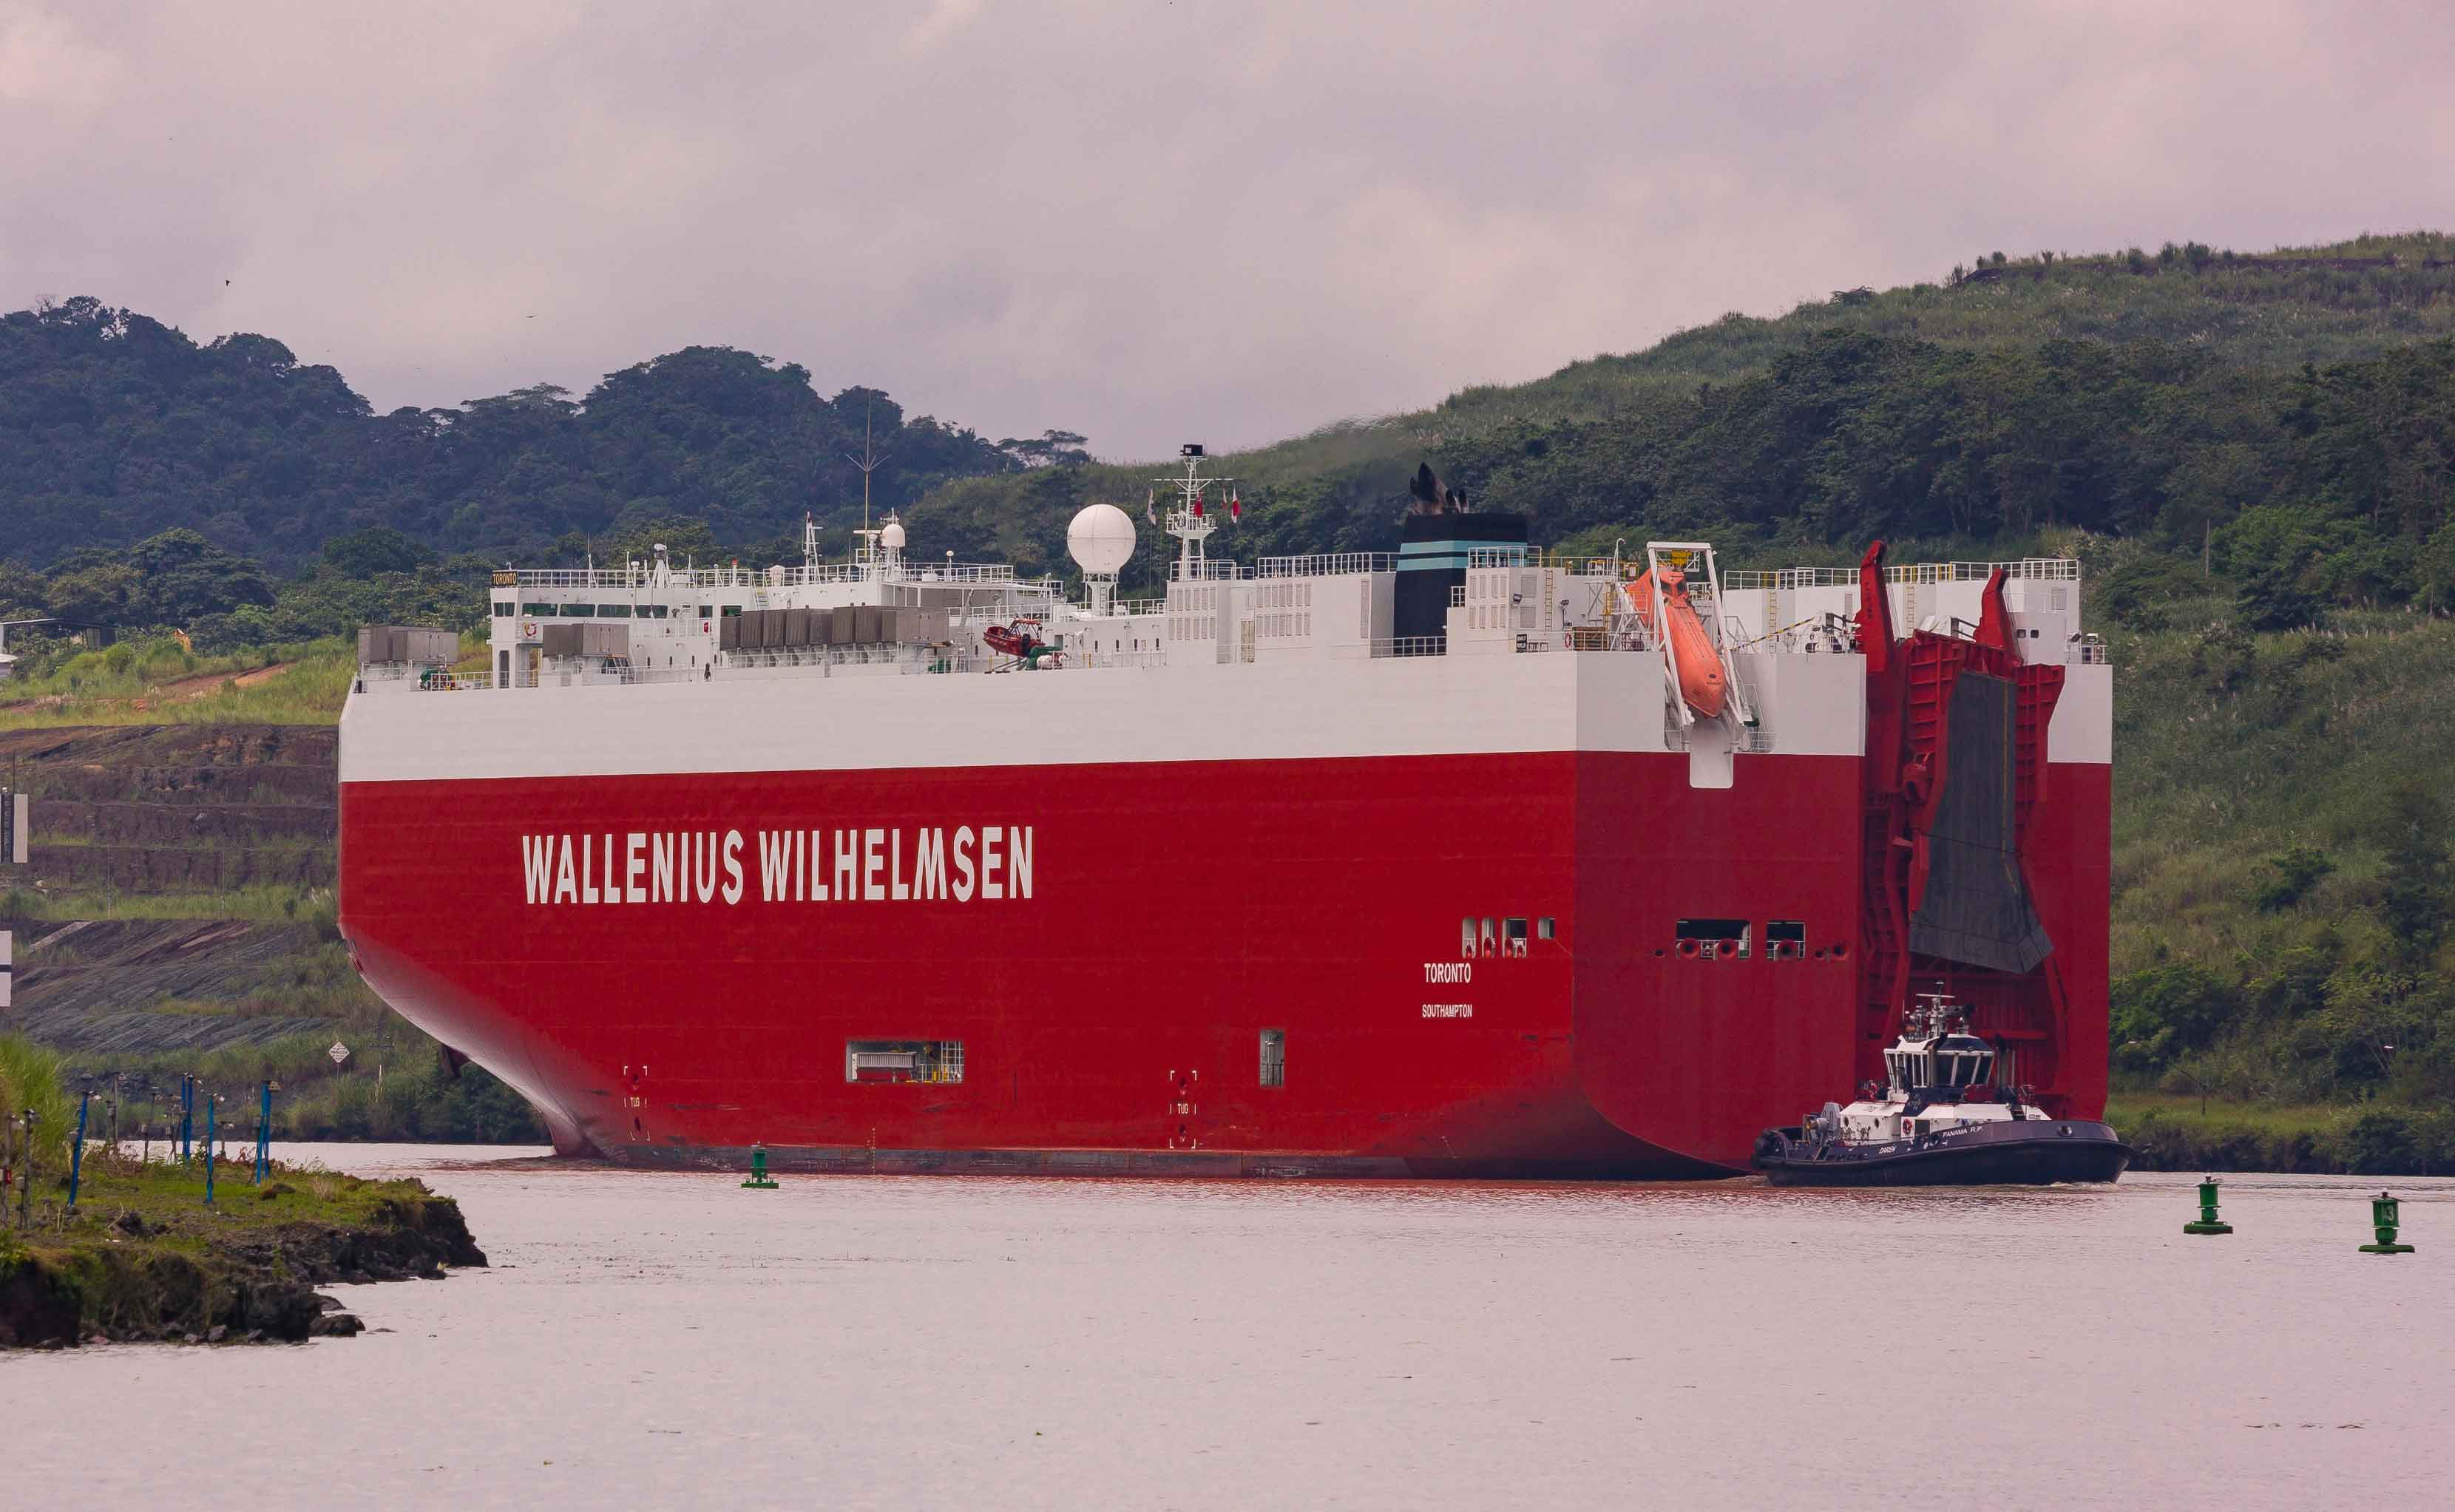 Wallenius Wilhelmsen Announces 50% Layoffs